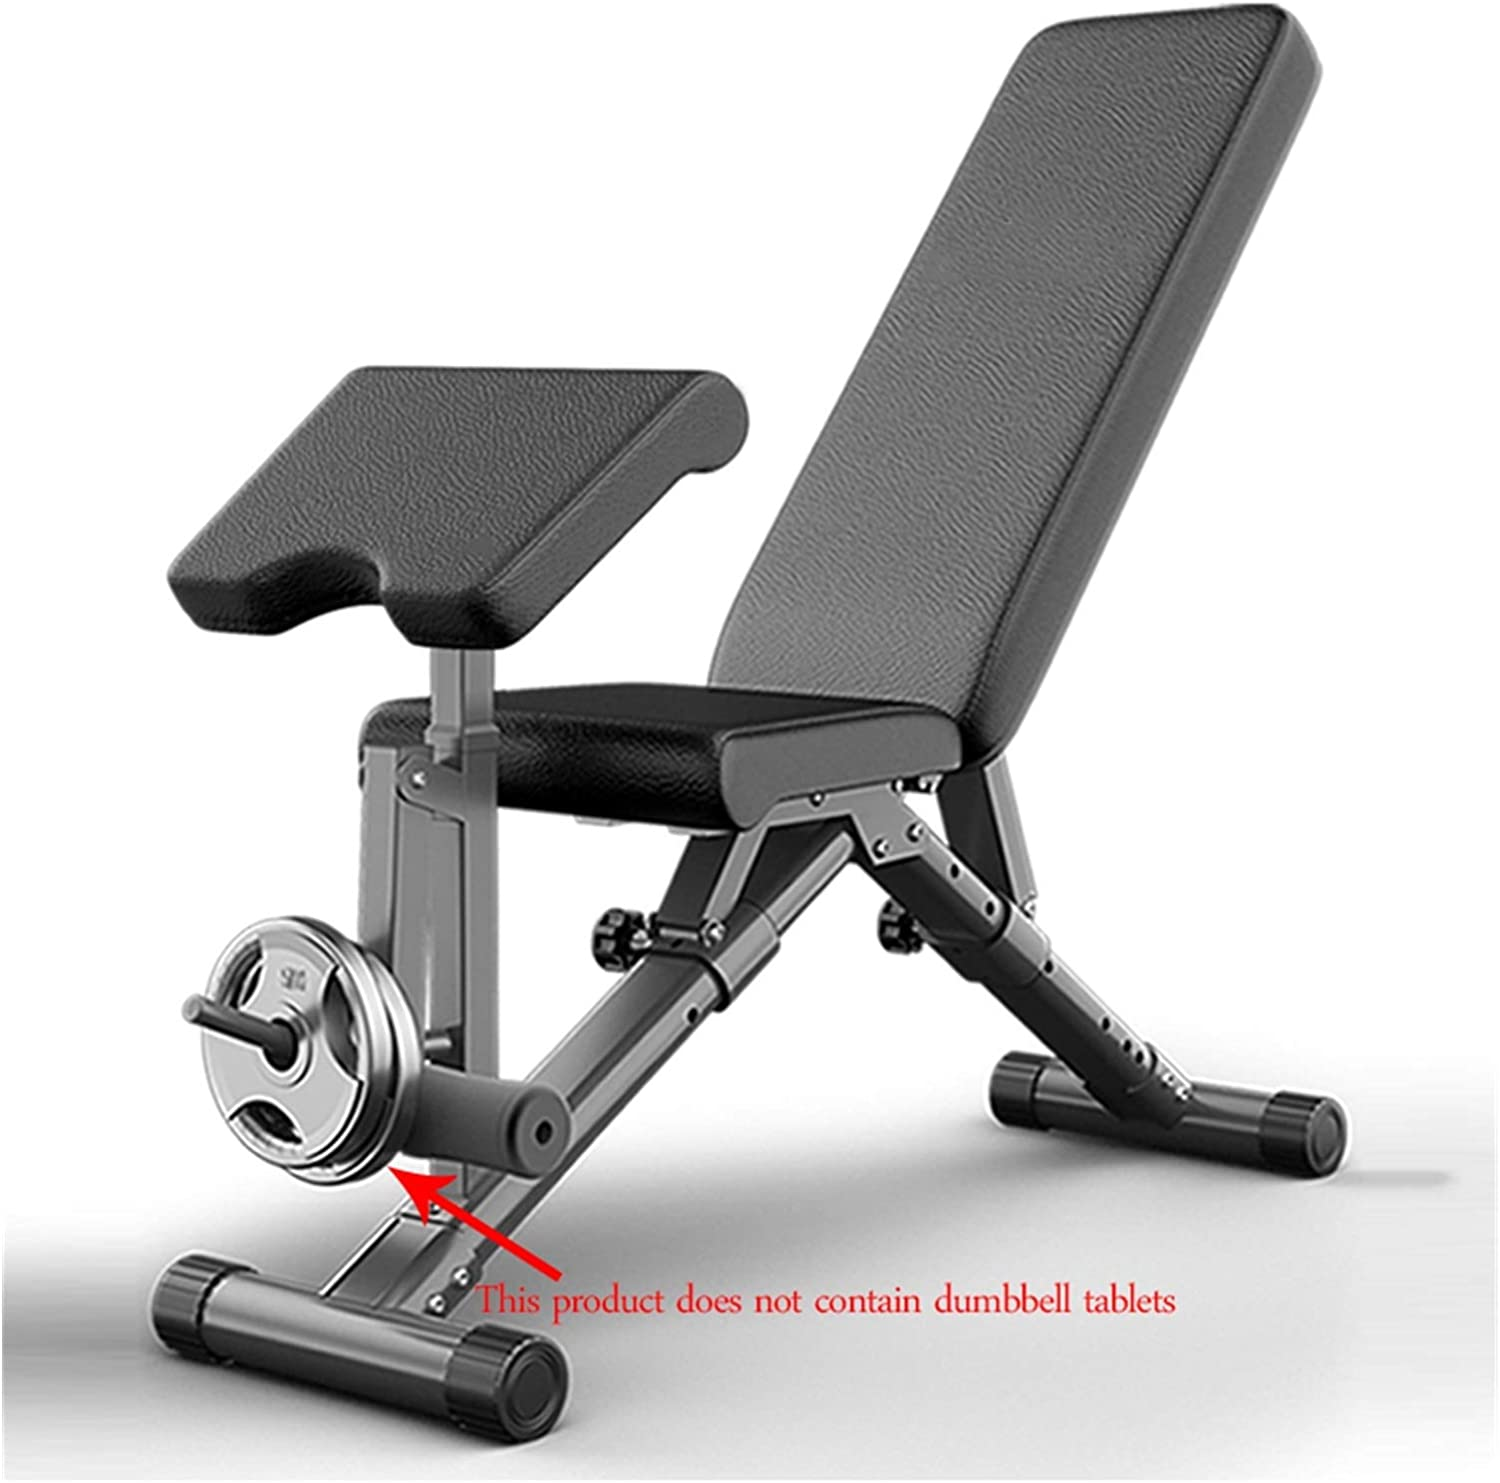 Dumbbell Bench Multi-Functional Fitness Indoor Supine Board Weight Bench Abdominal Exerciser Gym Equipment Color : Black, Size : 113 * 50 * 130cm Bearing 300KG